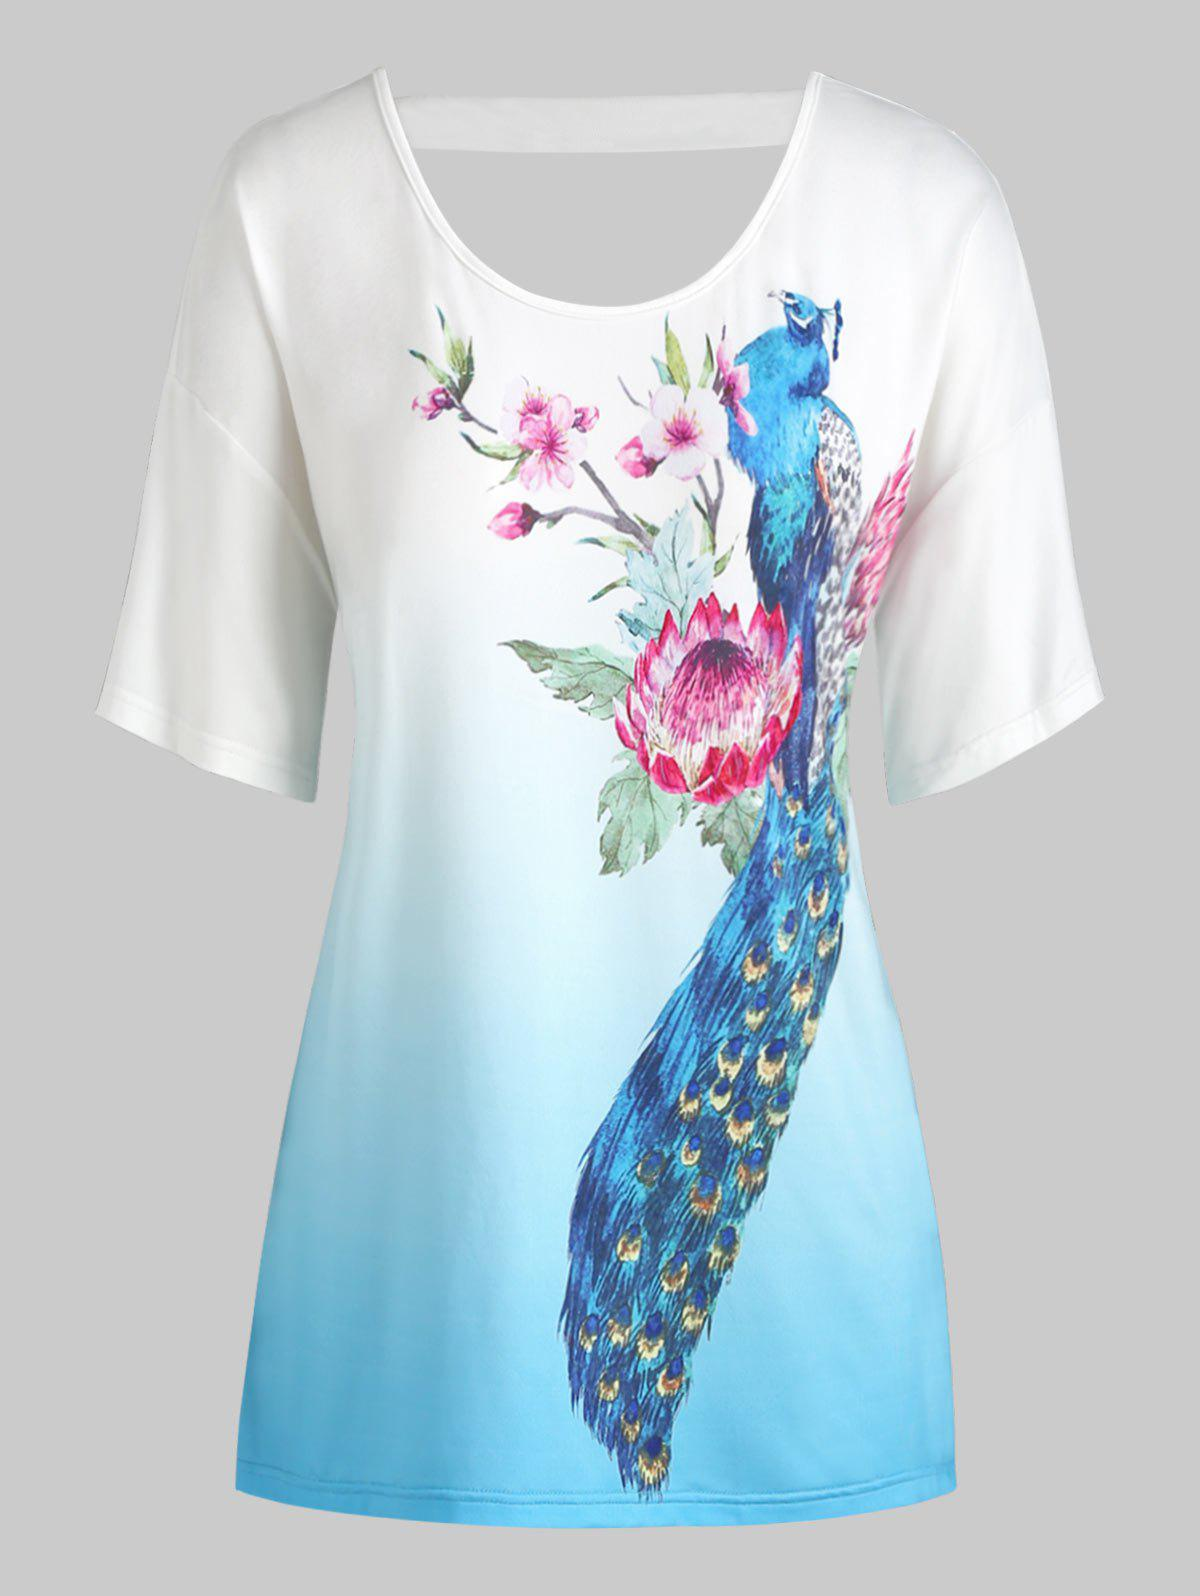 Plus Size Peacock Flower Print Criss Cross Ombre Tee Rosegal